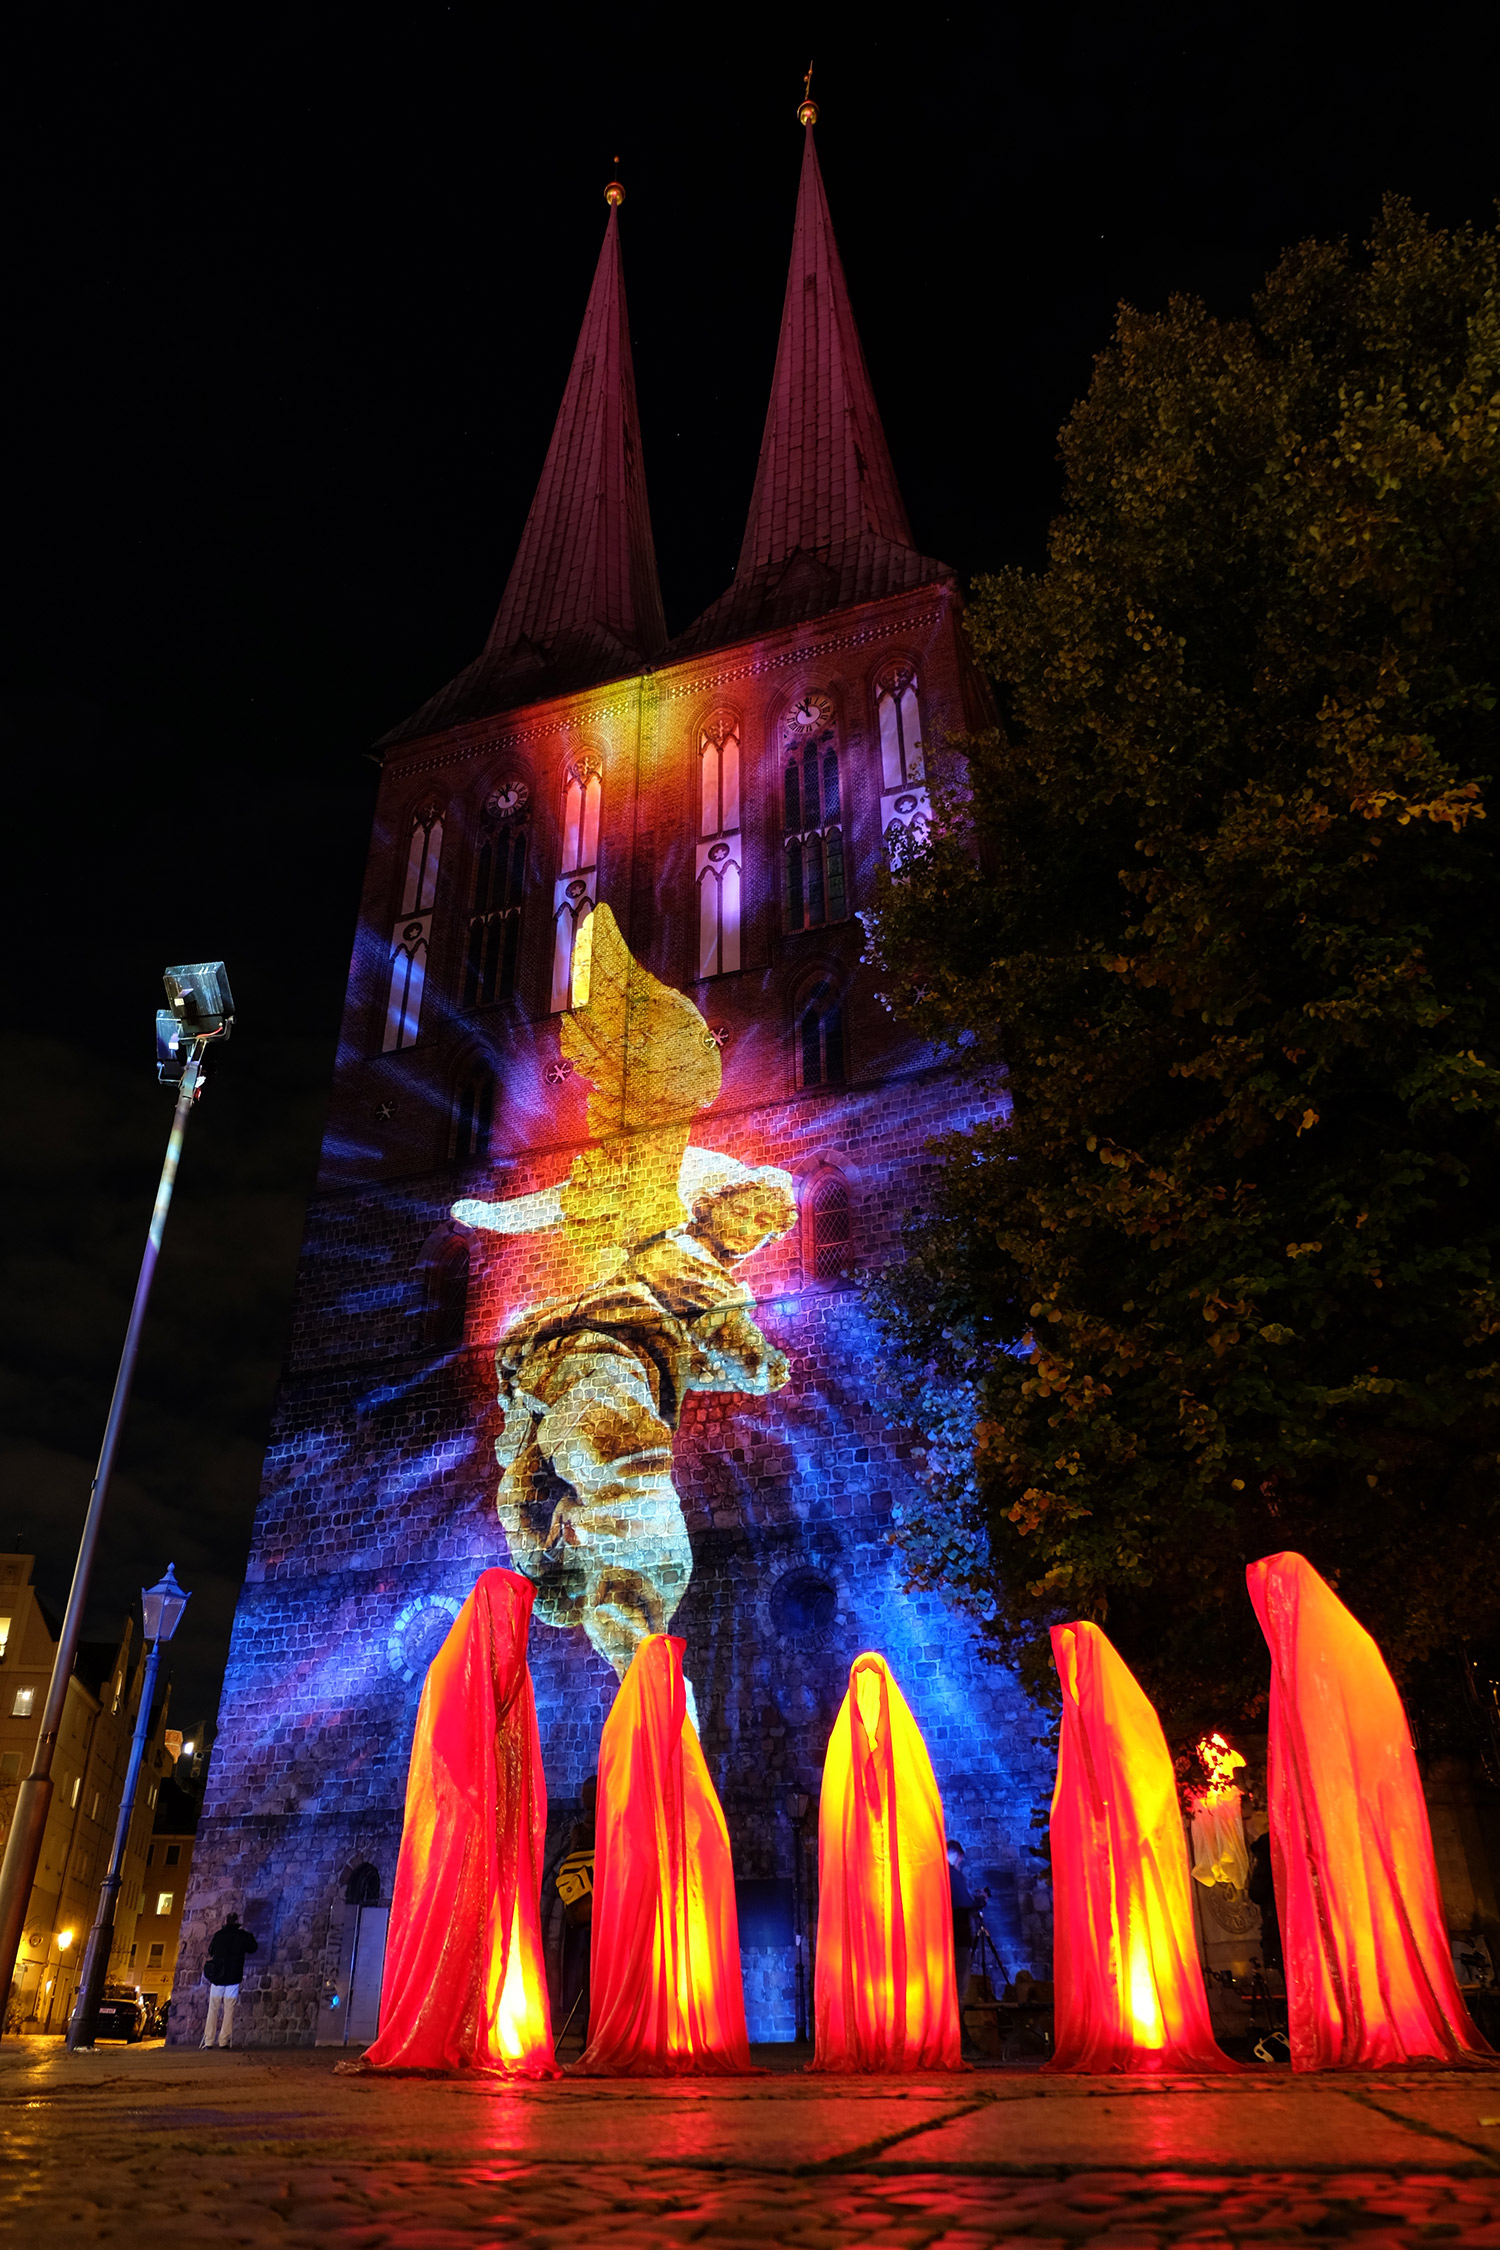 festival-of-lights-berlin-light-art-show-fine-arts-contemporary-art-design-modern-sculpture-statue-ghost-faceless-glow-lumina-8964